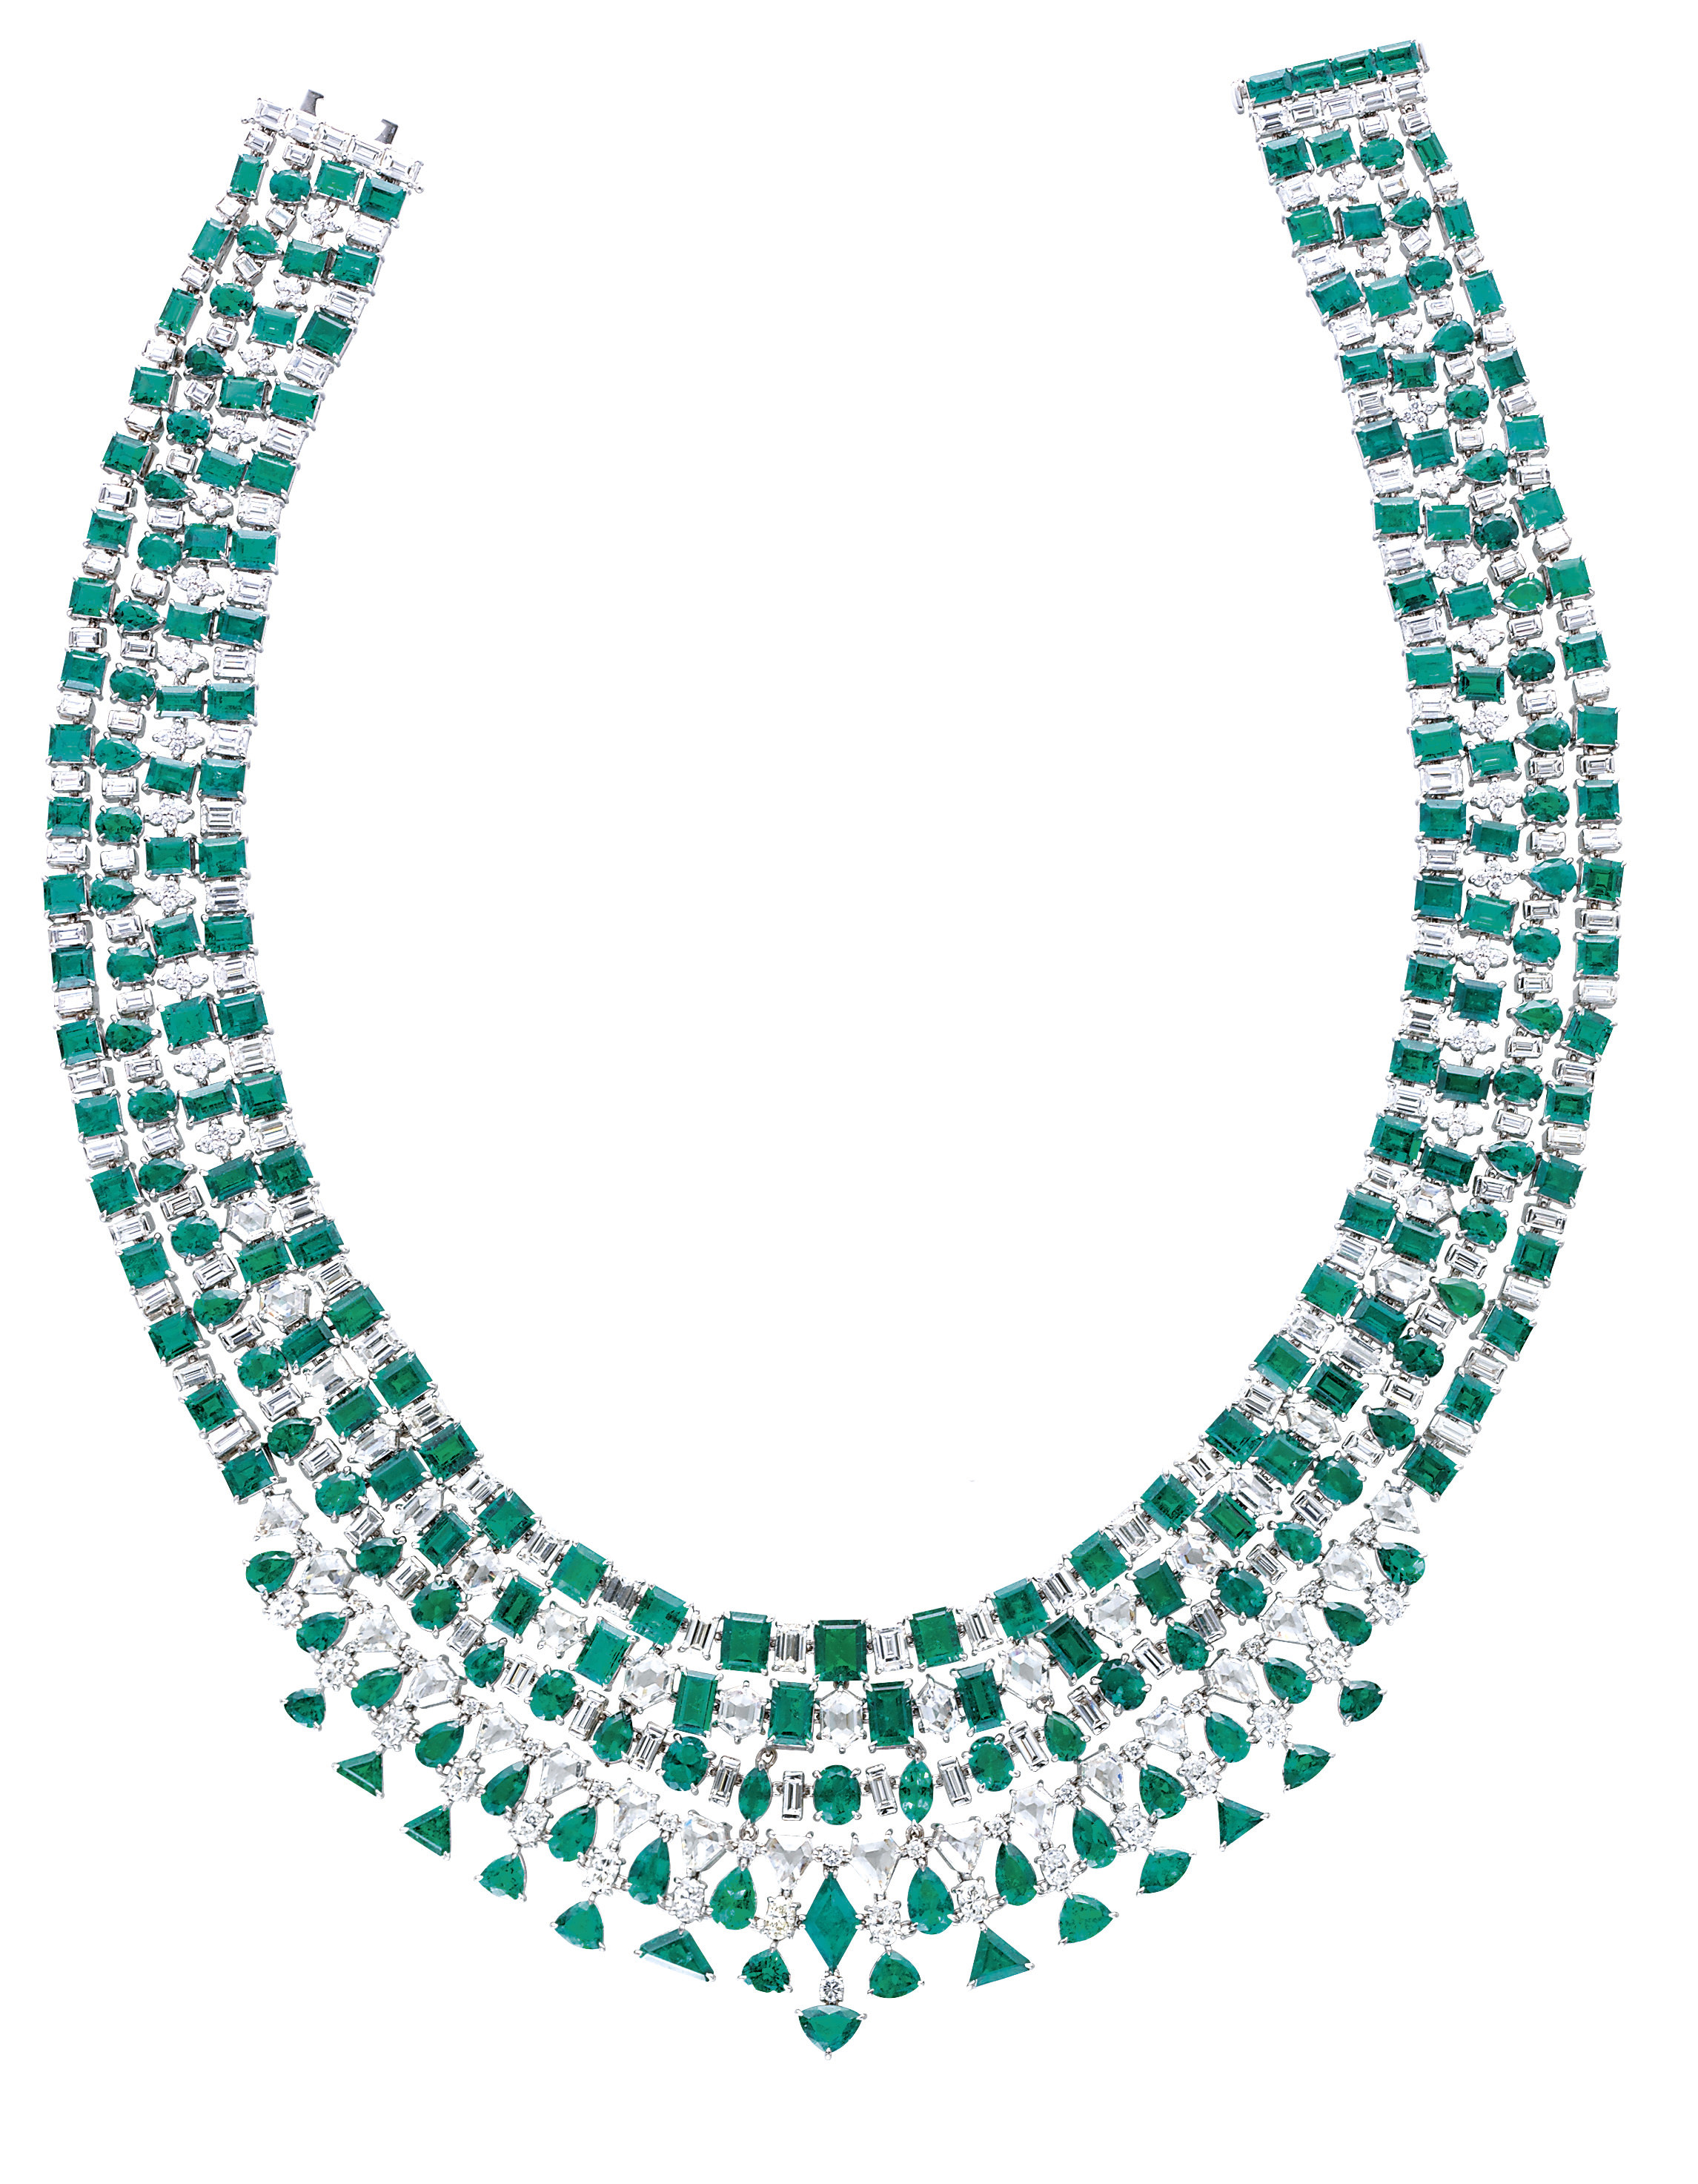 A STRIKING EMERALD AND DIAMOND